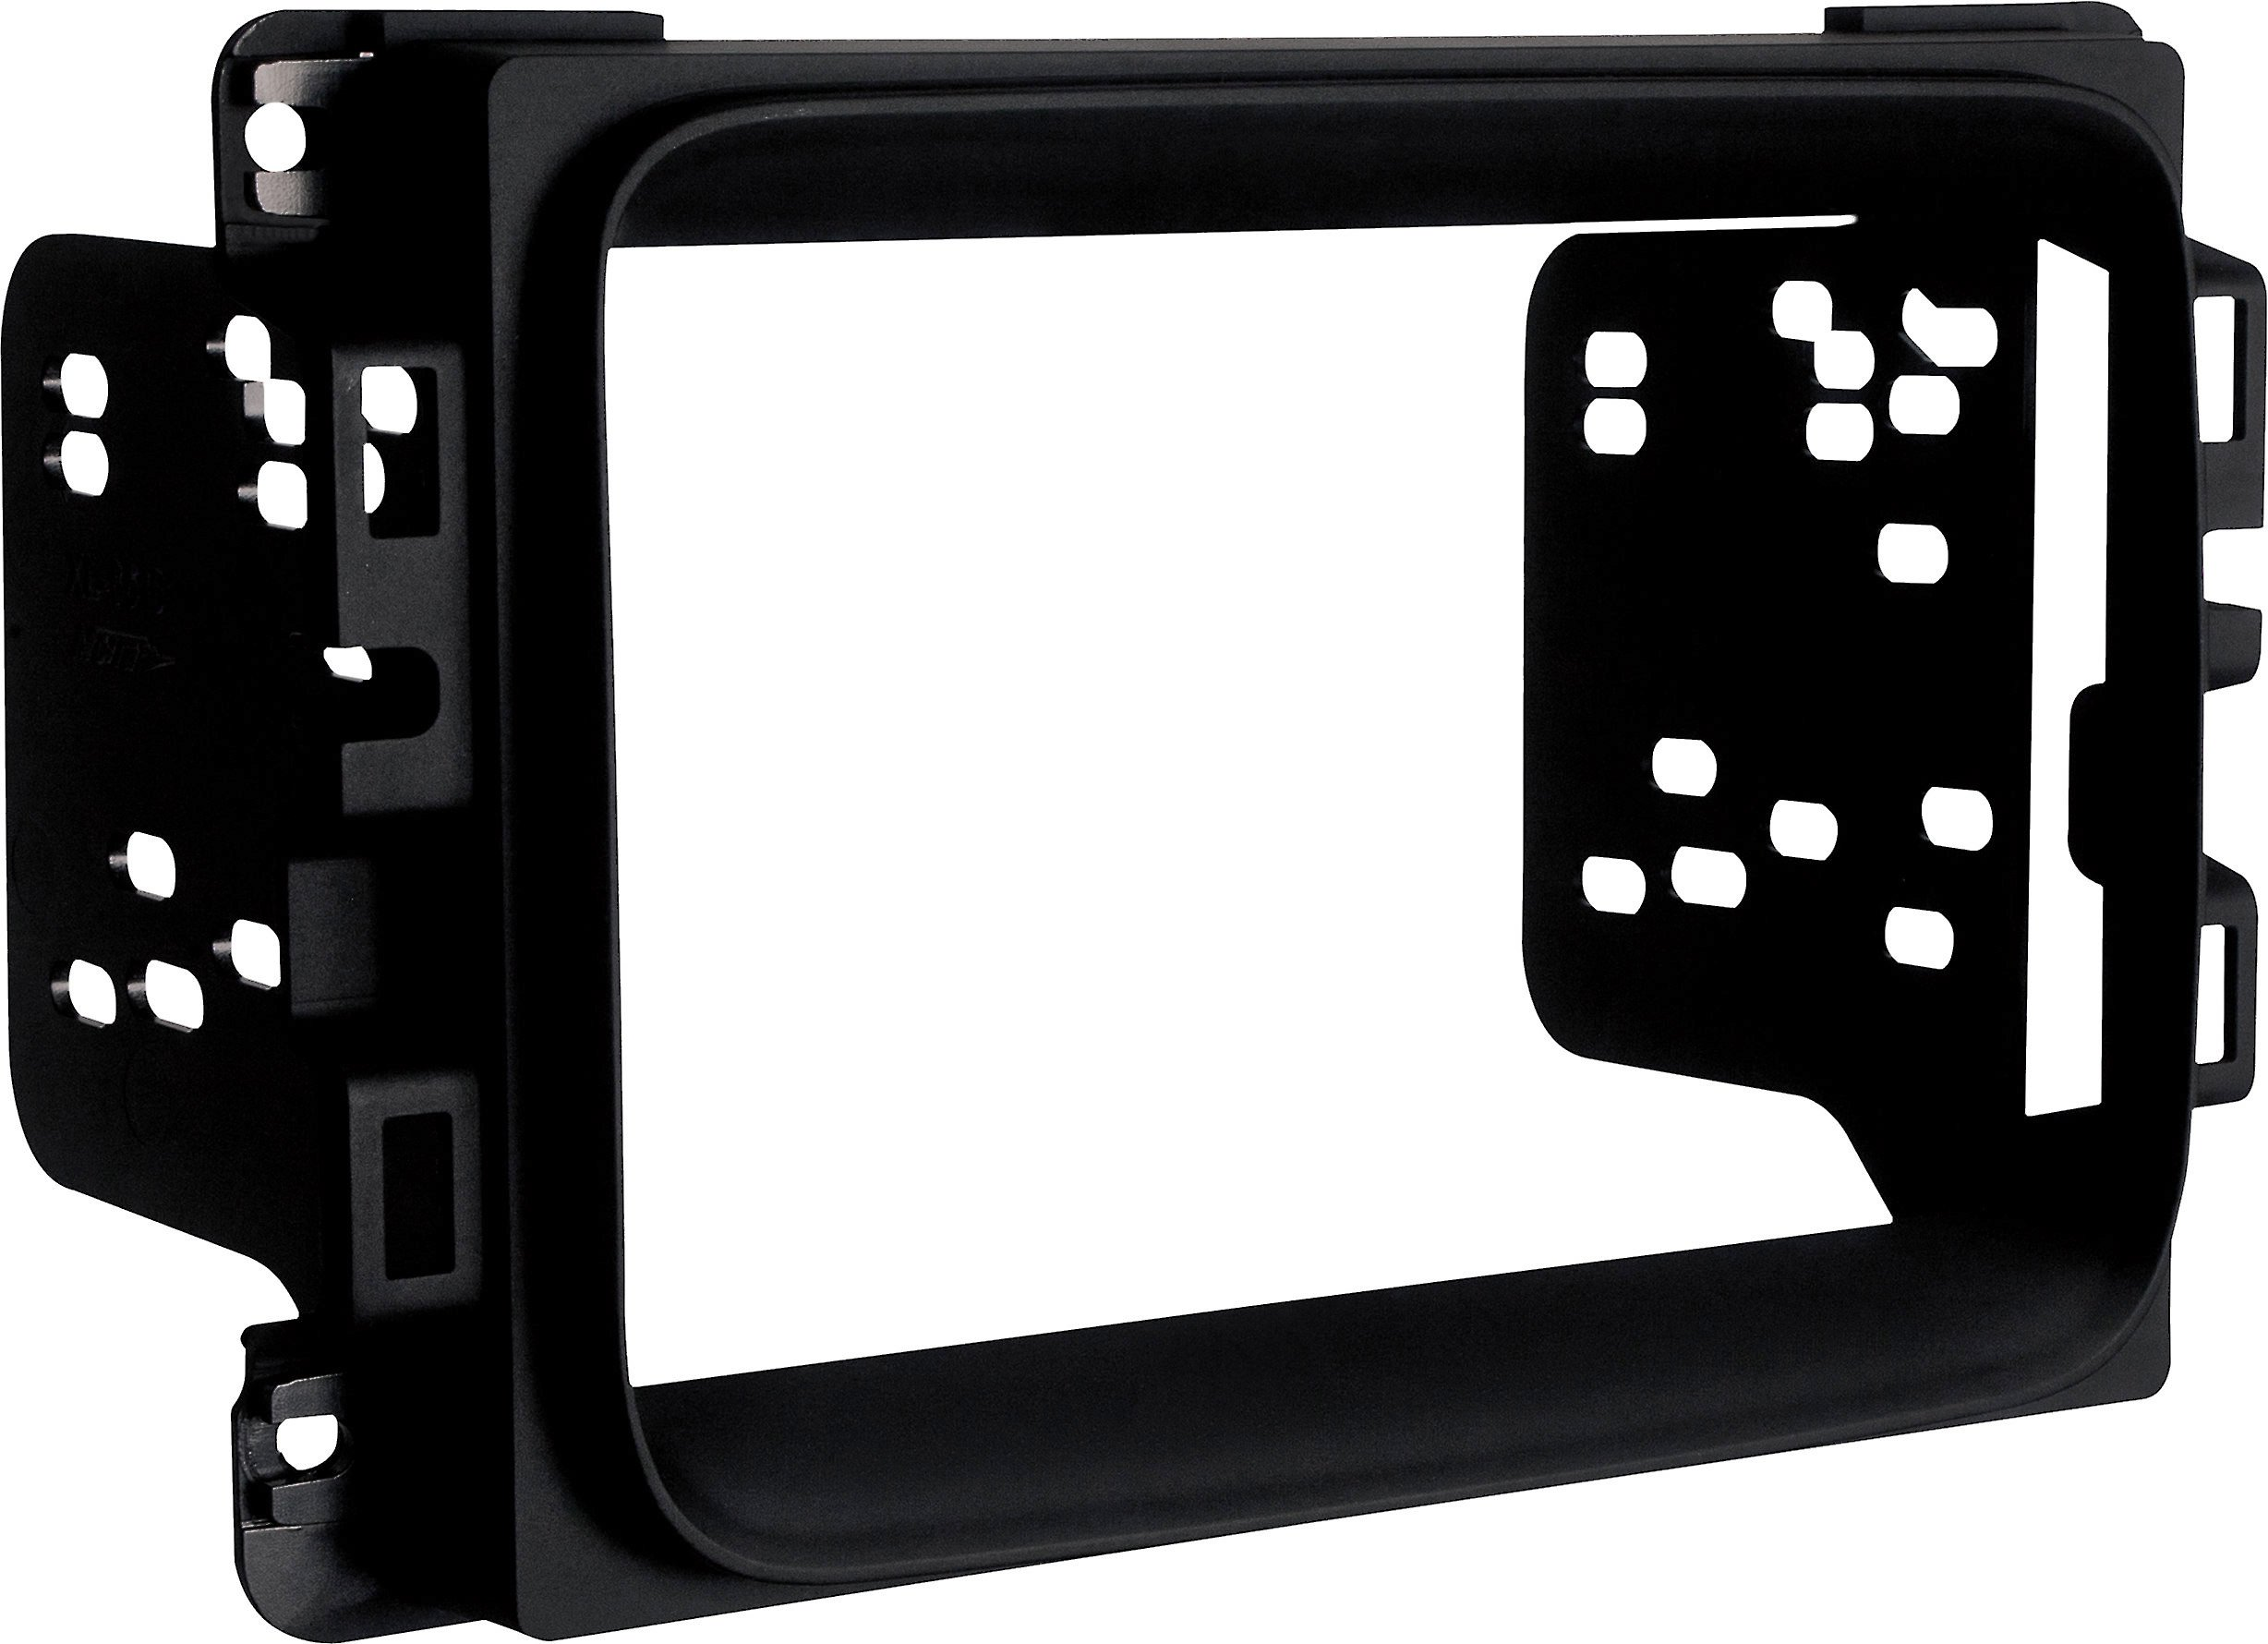 Metra 95 6518b Dash Kit For Select 2013 Up Dodge Ram Pickups Without The Factory 8 Monitor Double Din Radios At Crutchfield Canada